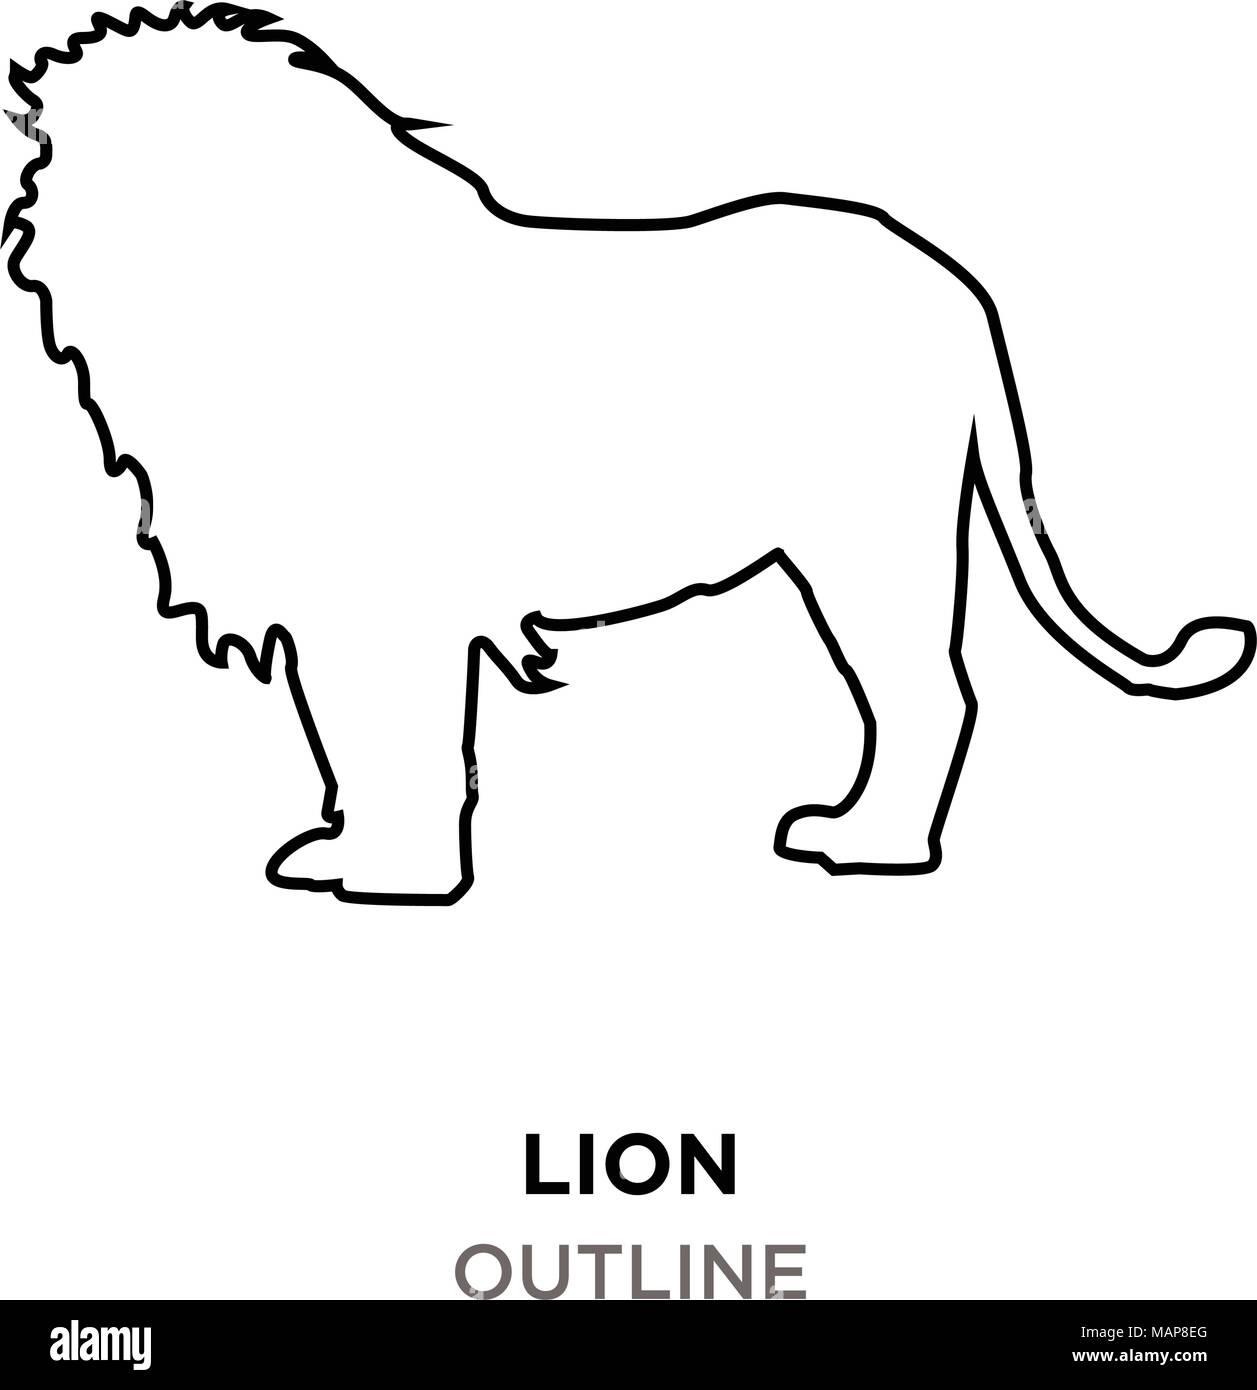 Lion Outline Images On White Background Stock Vector Image Art Alamy Cut out the shape and use it for coloring, crafts, stencils, and more. https www alamy com lion outline images on white background image178739864 html